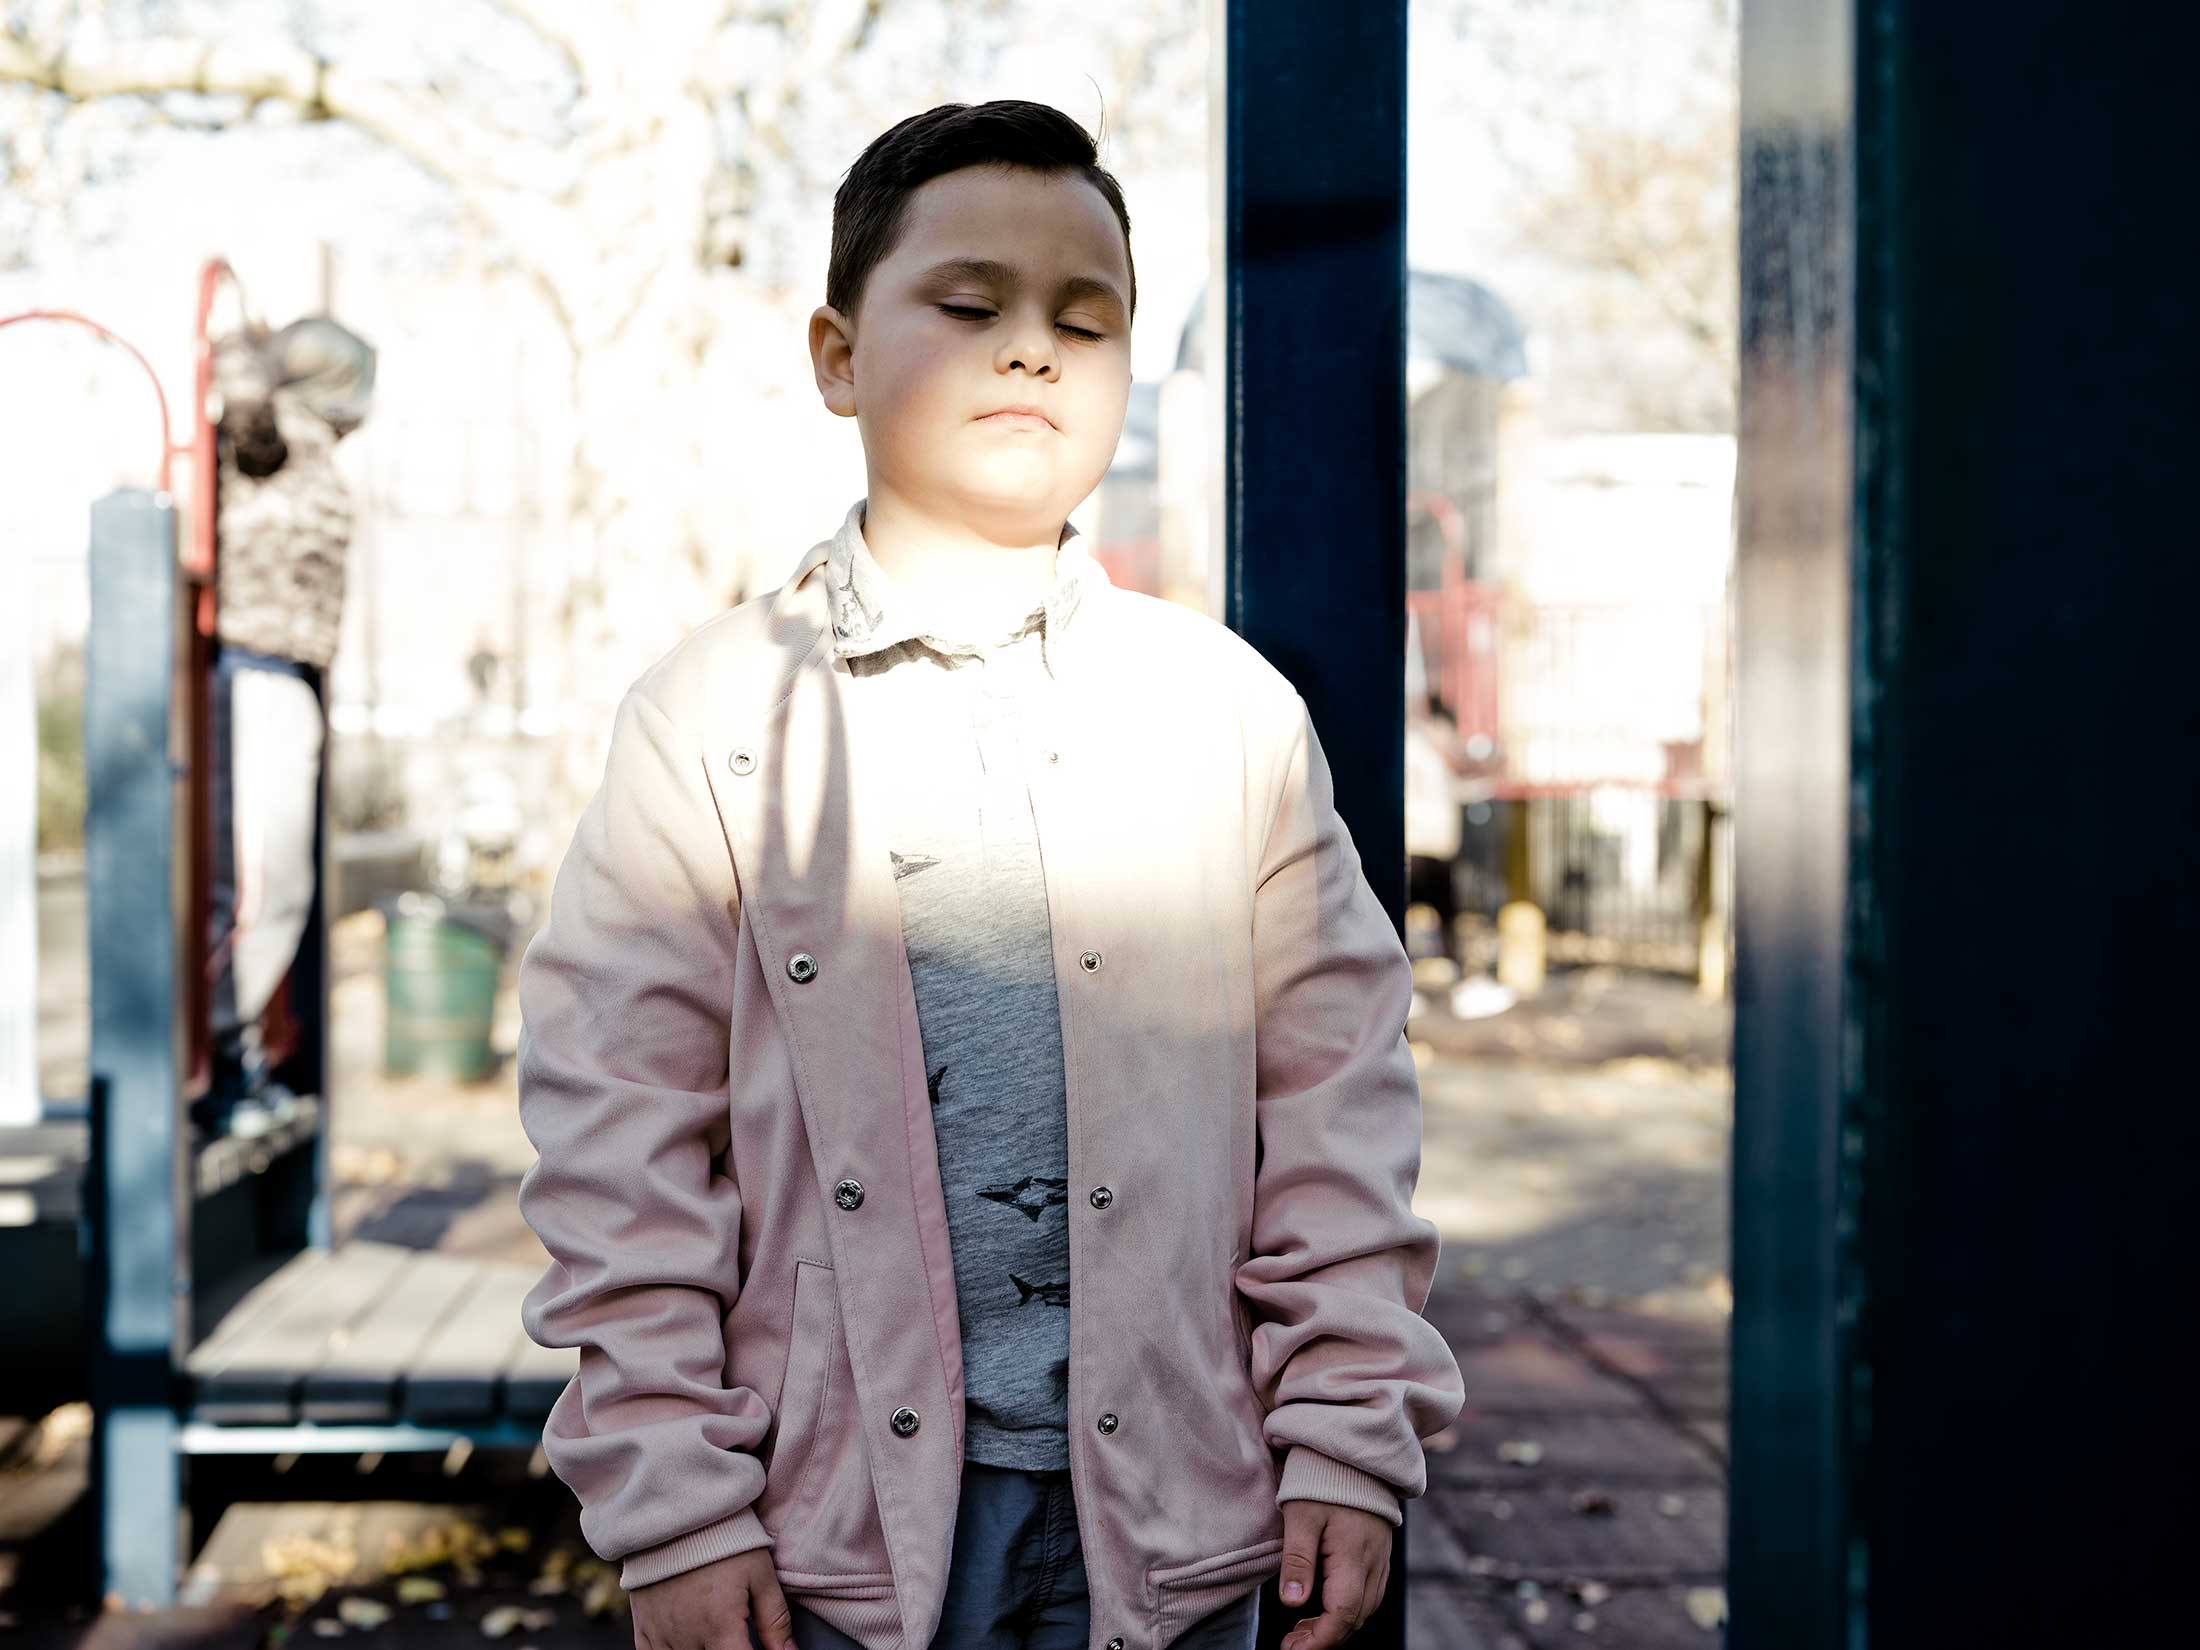 Transgender Boy / Queens, New York